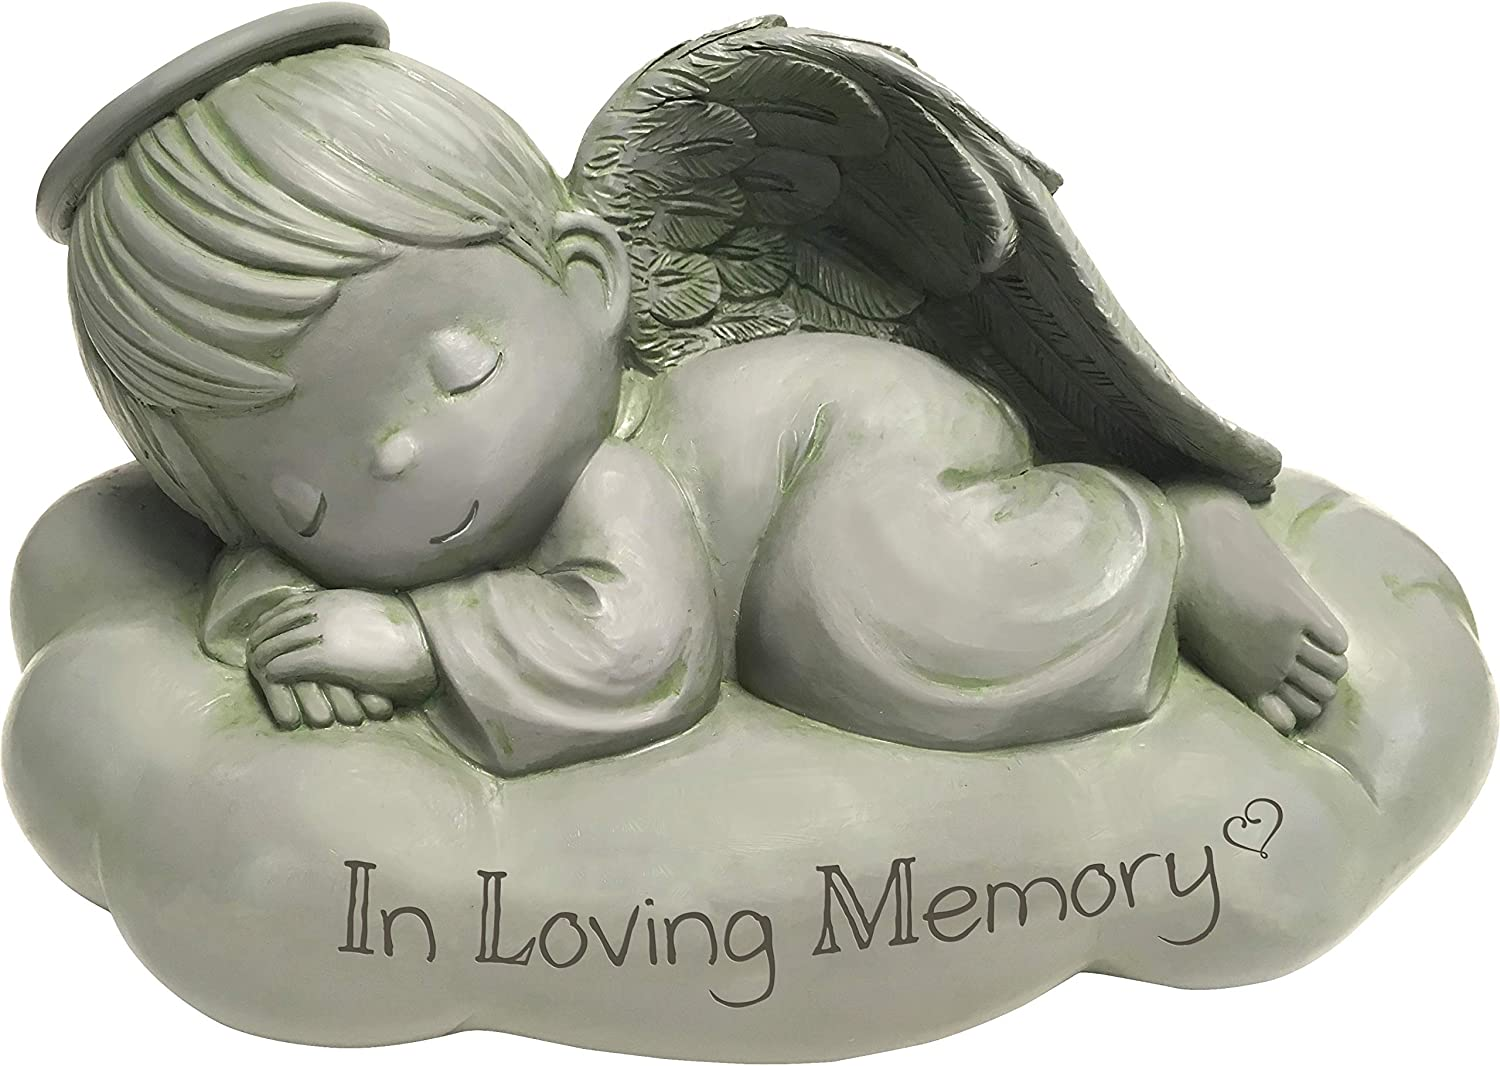 Precious Moments Sleeping Angel in Loving Memorial Resin Garden 183441 Stone, One Size, Multi